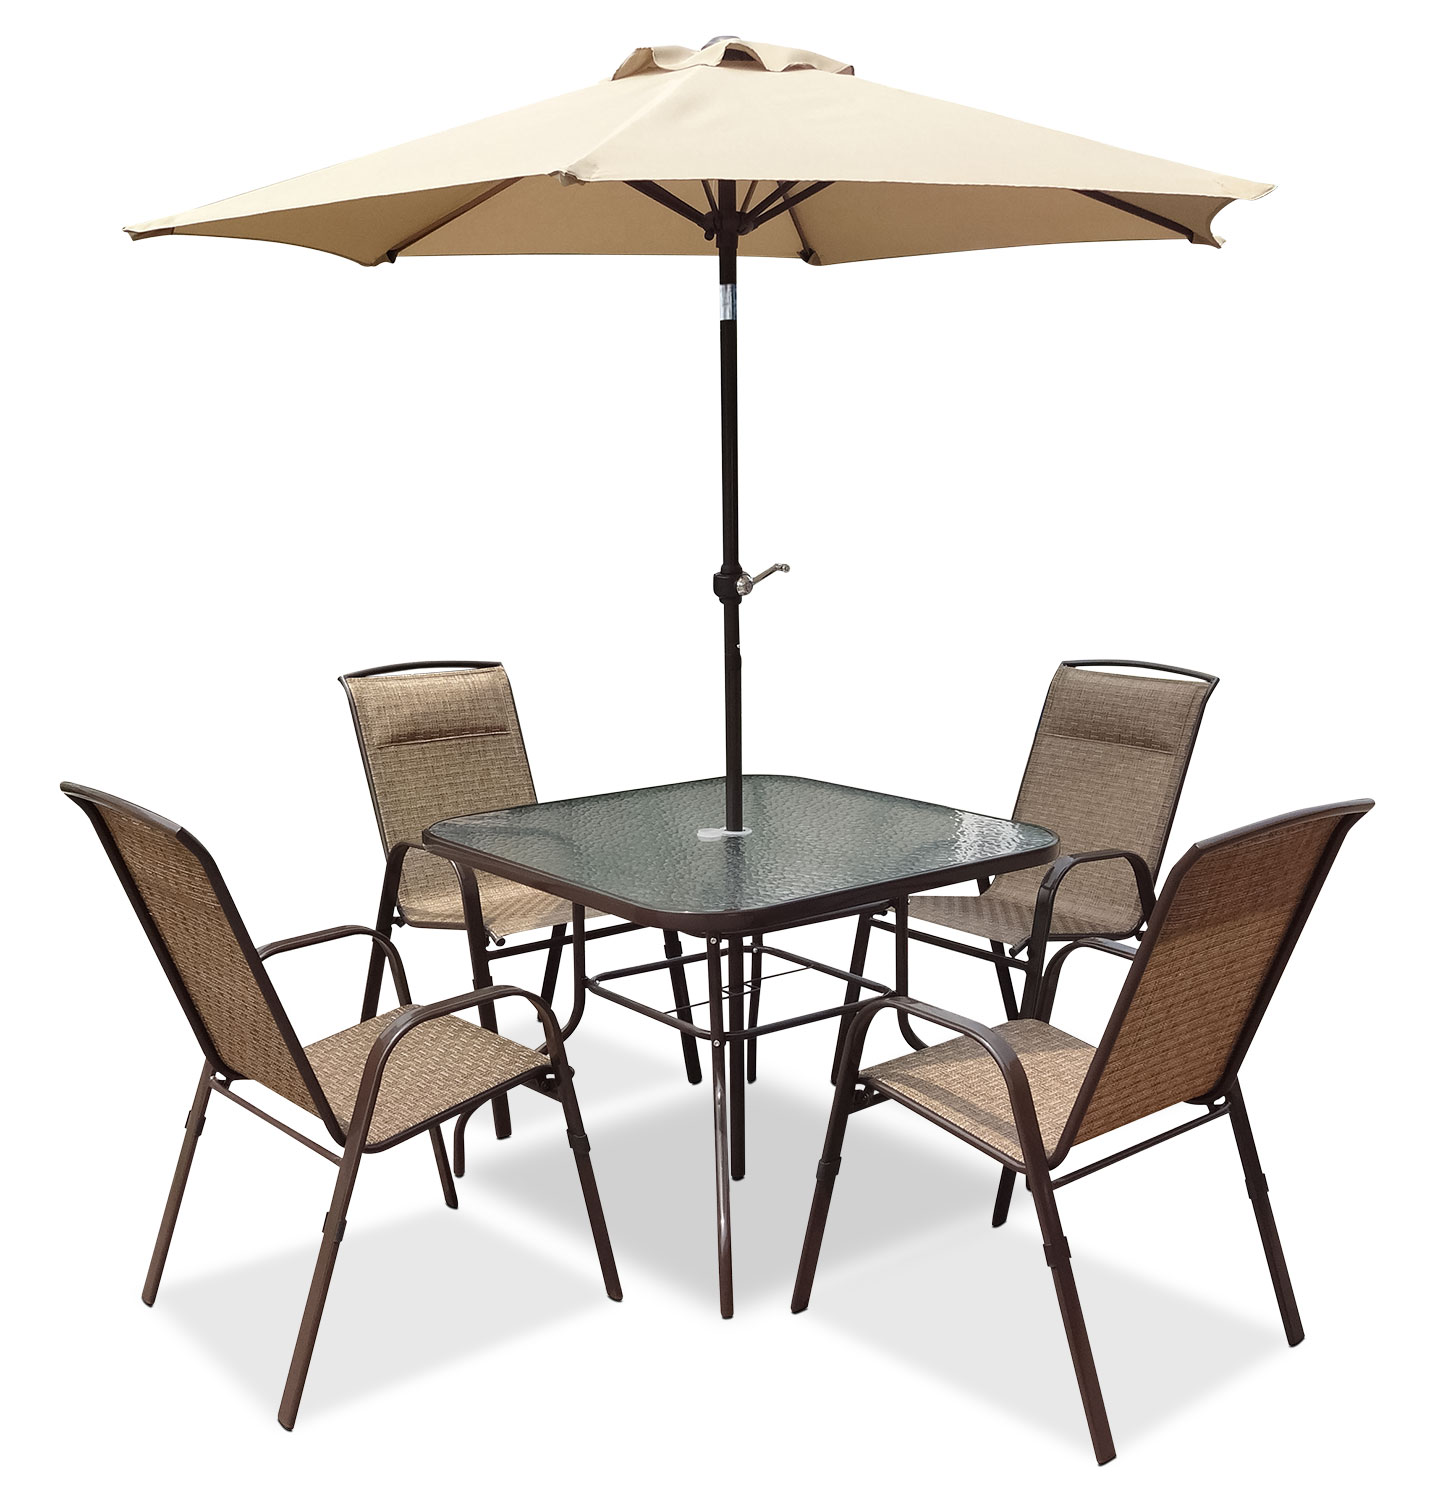 CorLiving 6 Piece Patio Dining Set With Umbrella United Furniture Warehouse